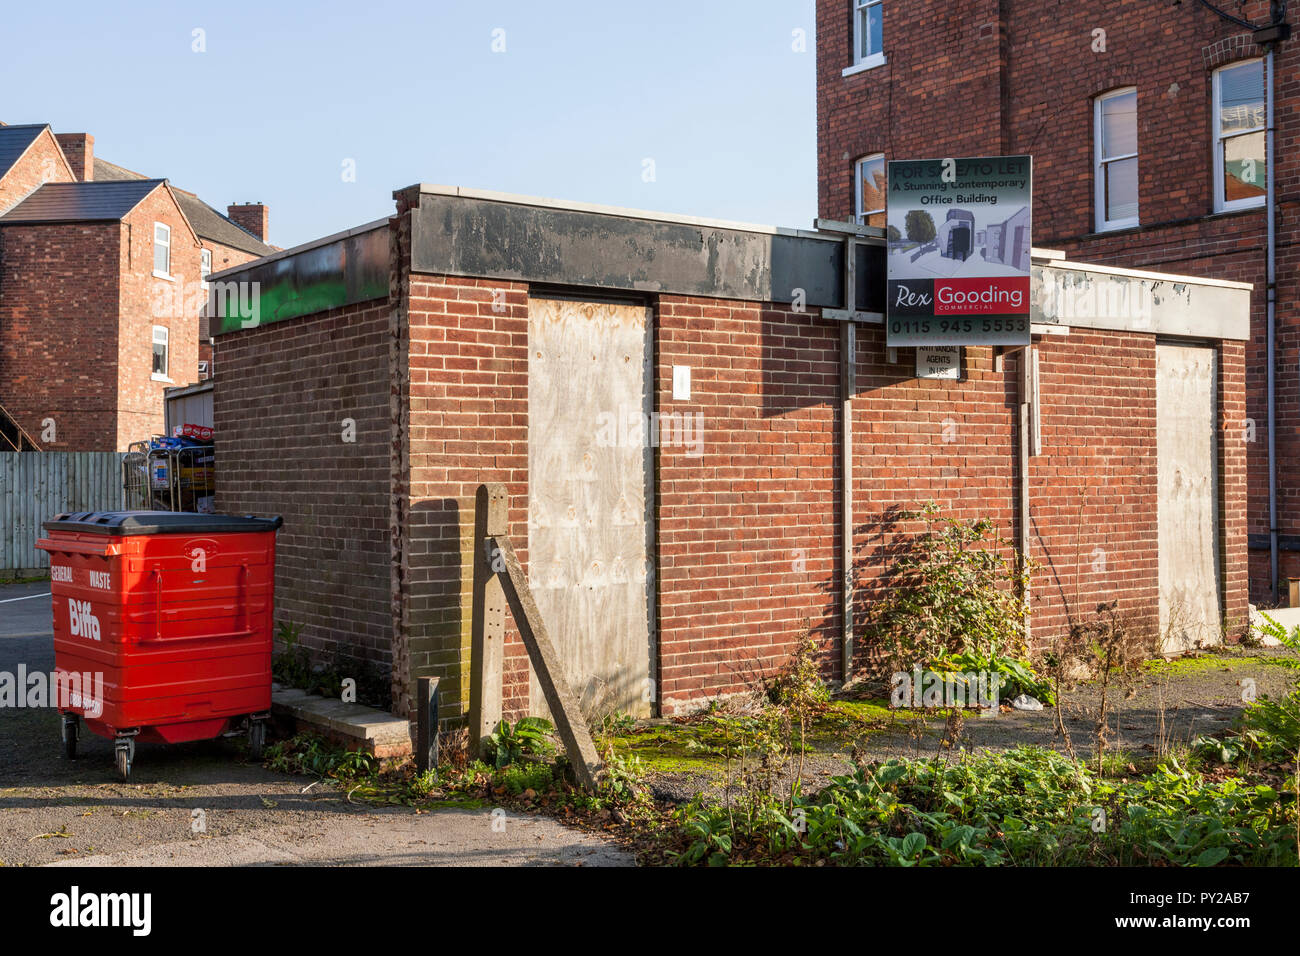 Former public toilets for sale or to let. Available for change of use as a 'stunning contemporary office building', Nottinghamshire, England, UK - Stock Image